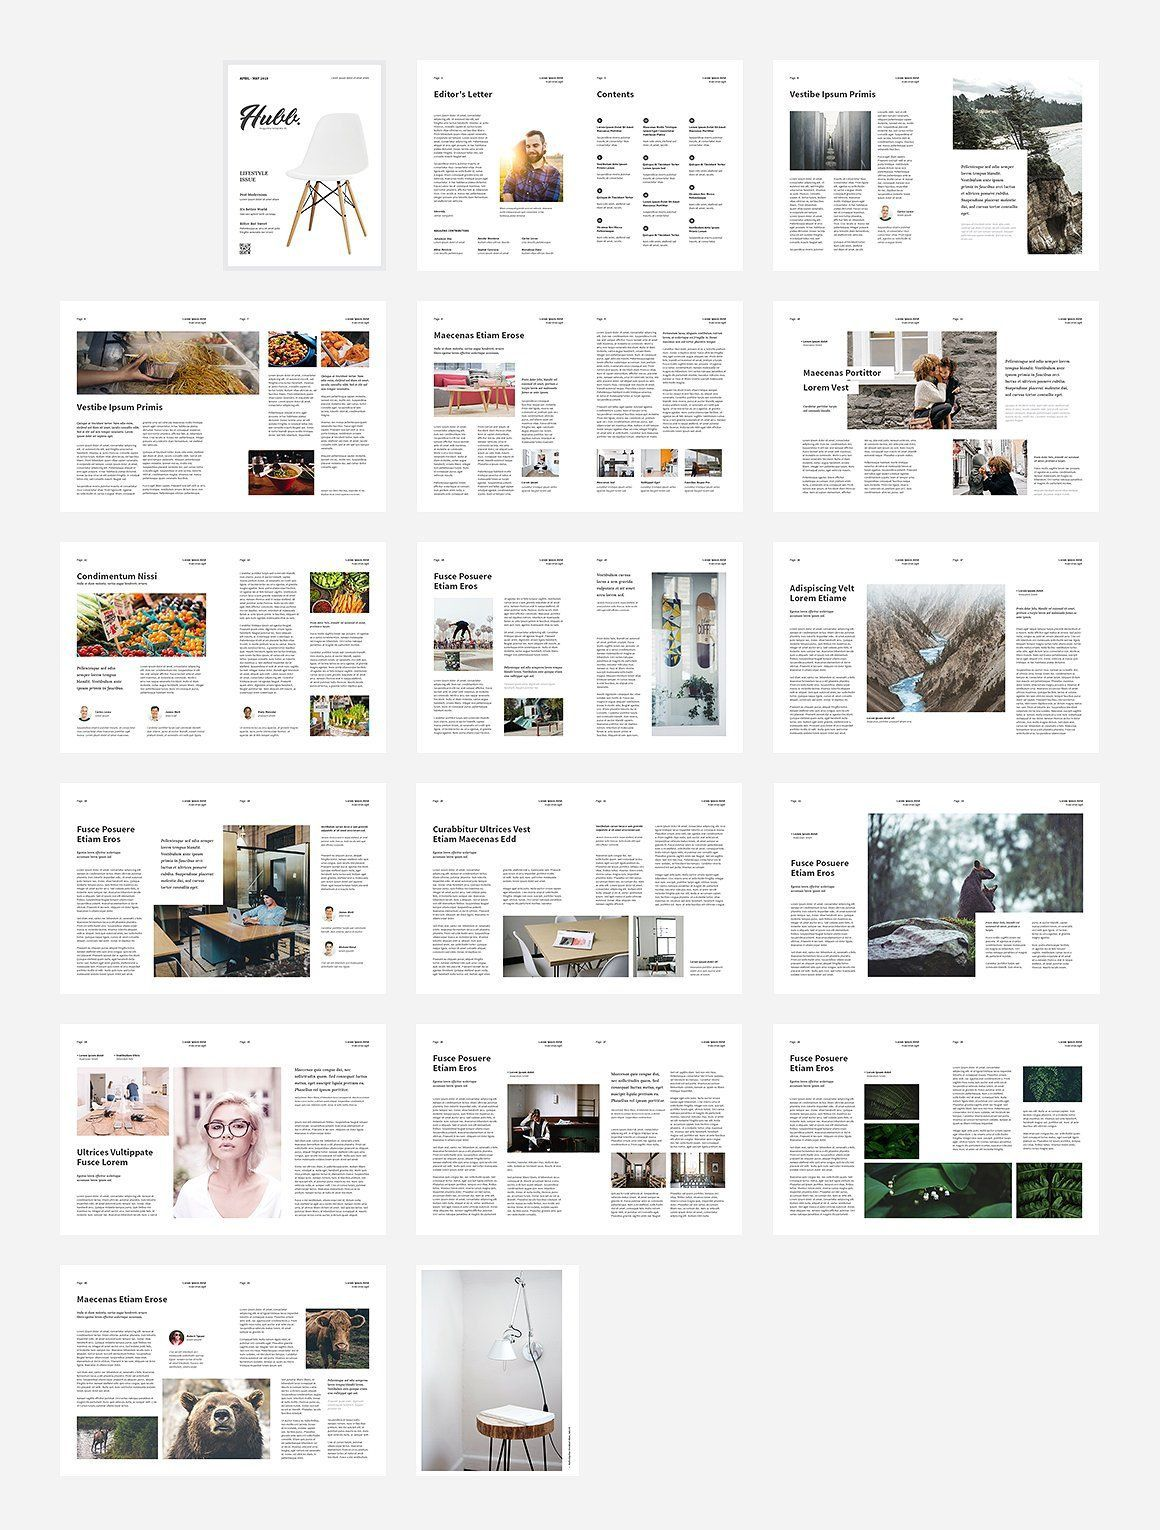 001 Magnificent Family History Book Template Image  Sample Writing AFull